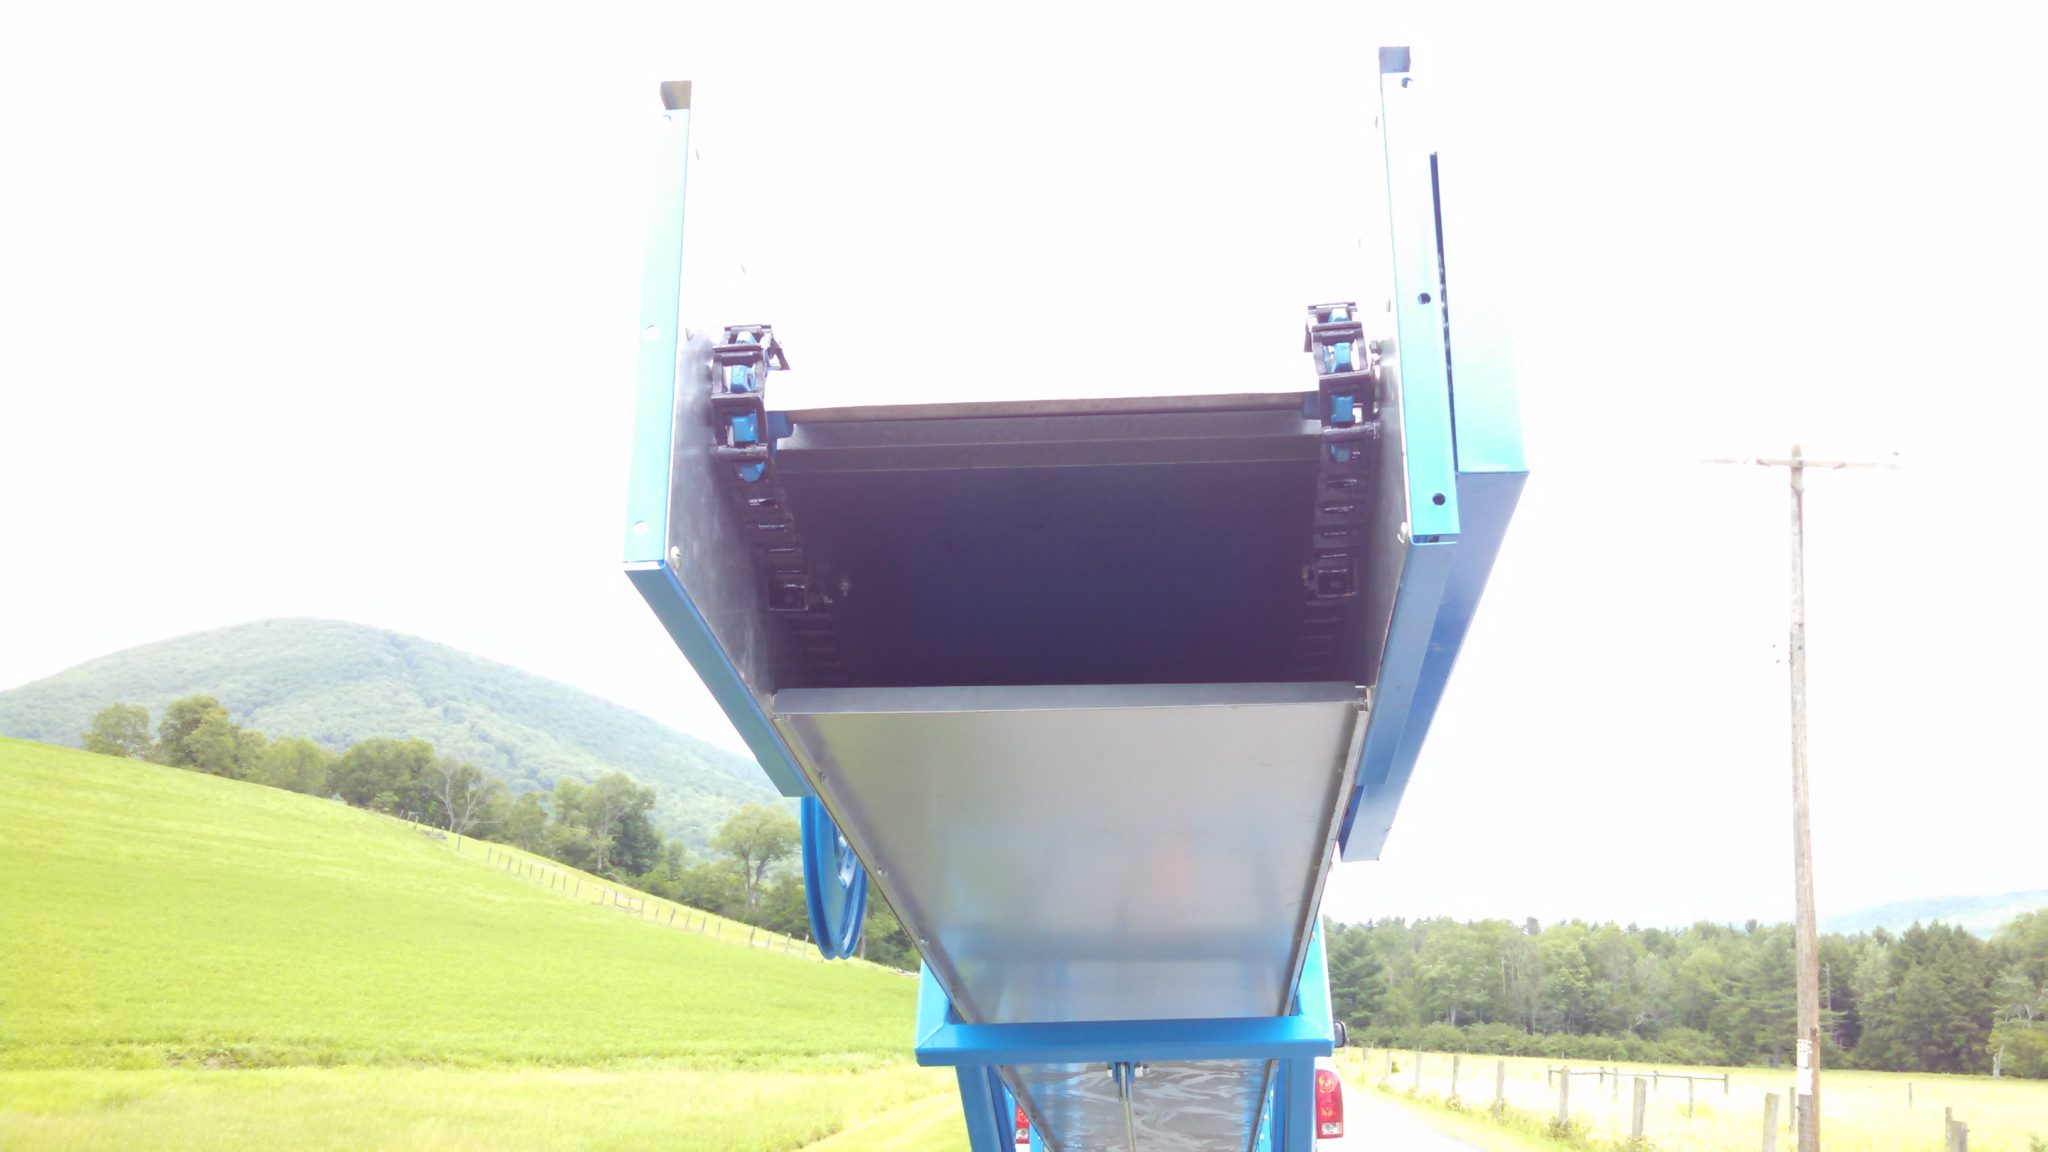 Portable Elevator for Ear Corn, & Hay Bales, Versatile & Economical   Portable Elevator for Ear Corn, & Hay Bales priced here is for a 32 Ft   Elevator